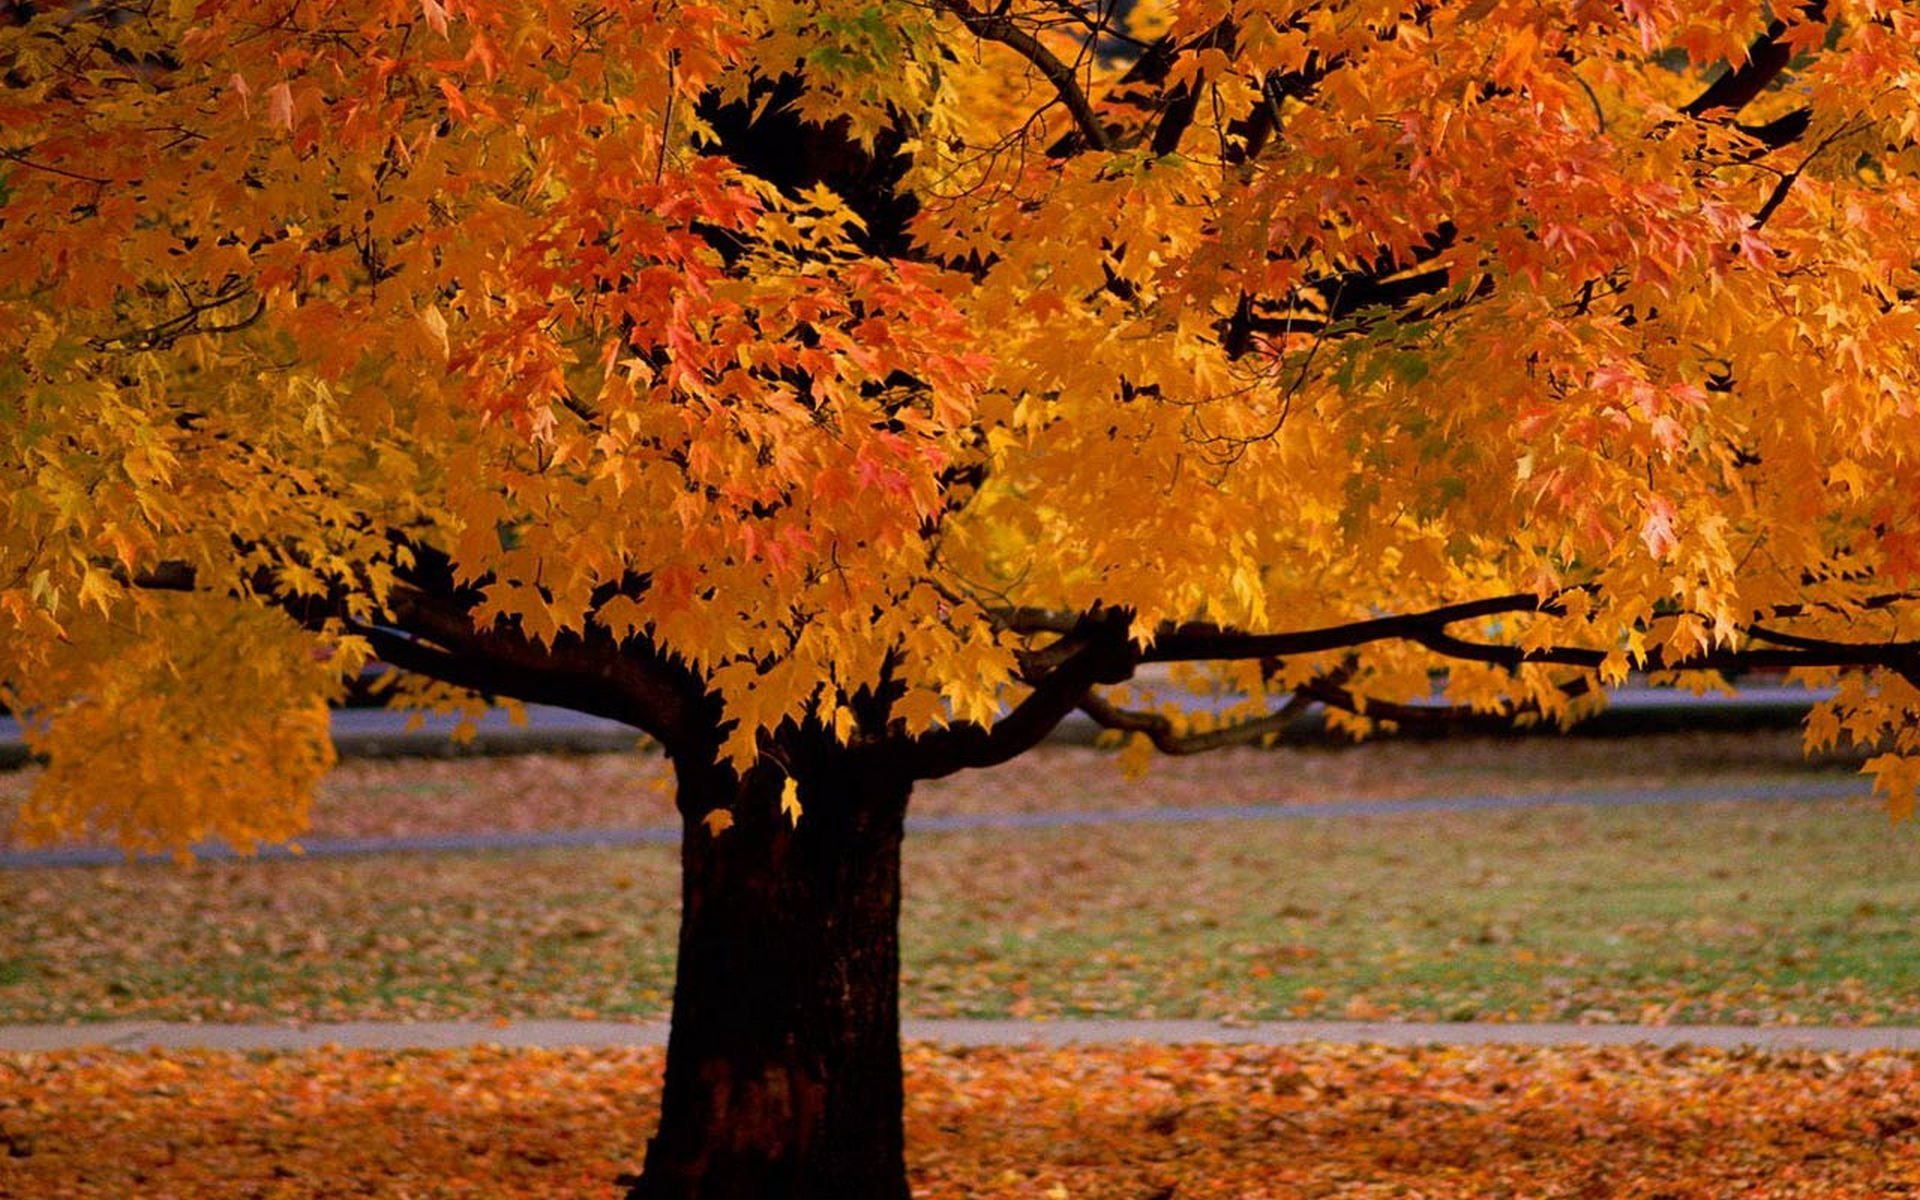 27400 download wallpaper Plants, Landscape, Trees, Autumn screensavers and pictures for free